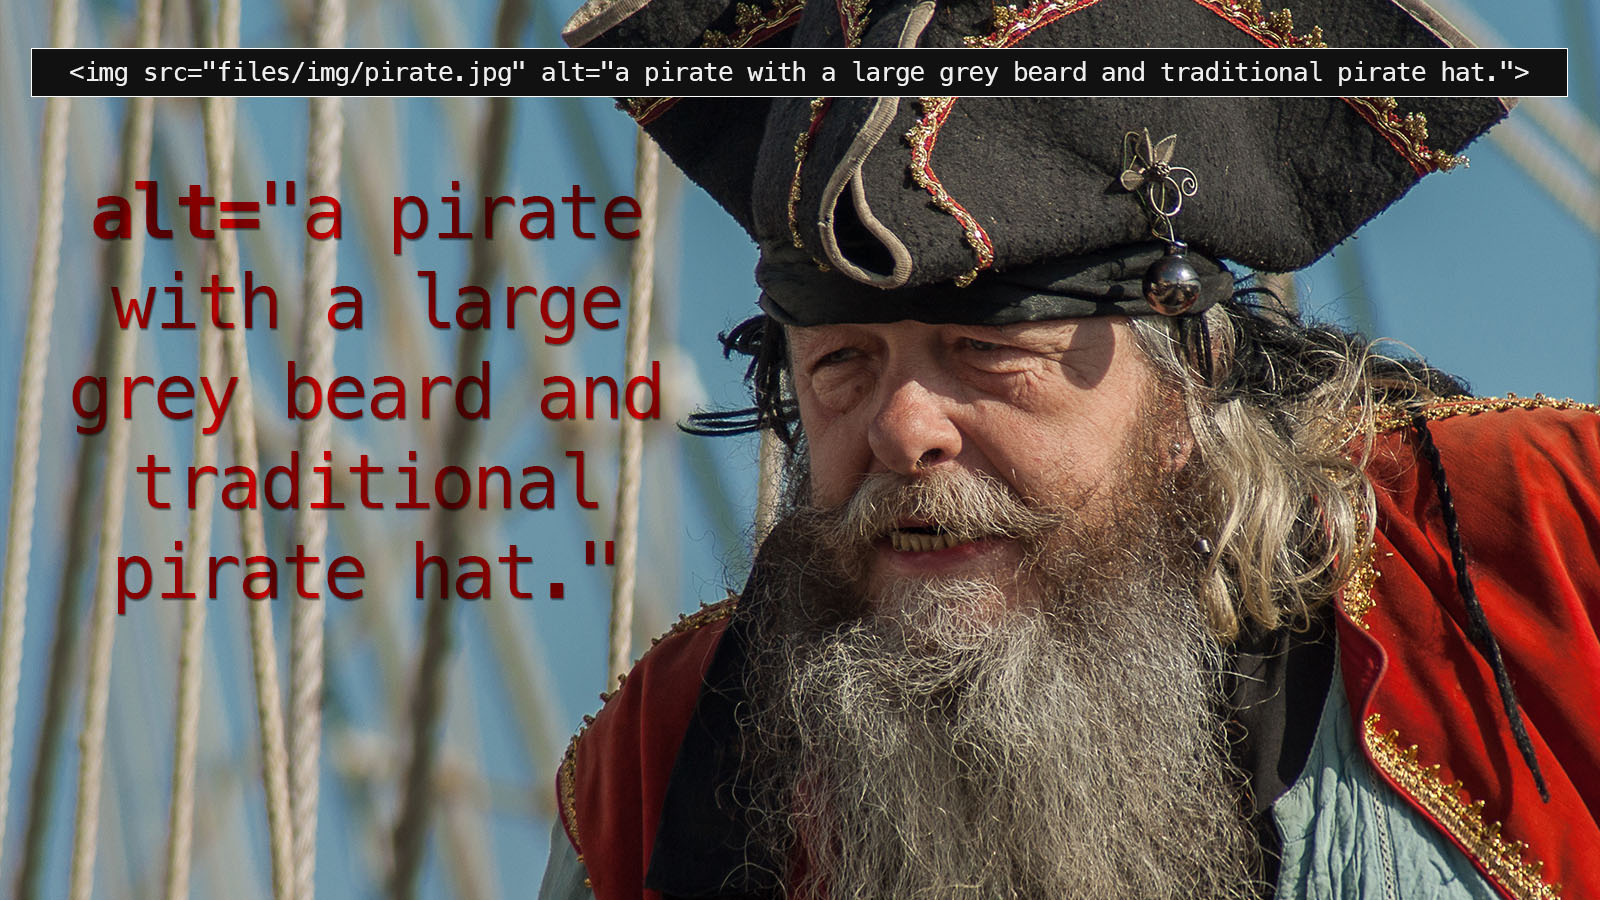 A composite image showing the importance of image alt tags - the basis of which is a pirate with a large grey beard and traditional pirate hat and an alt tag which describes exactly that.